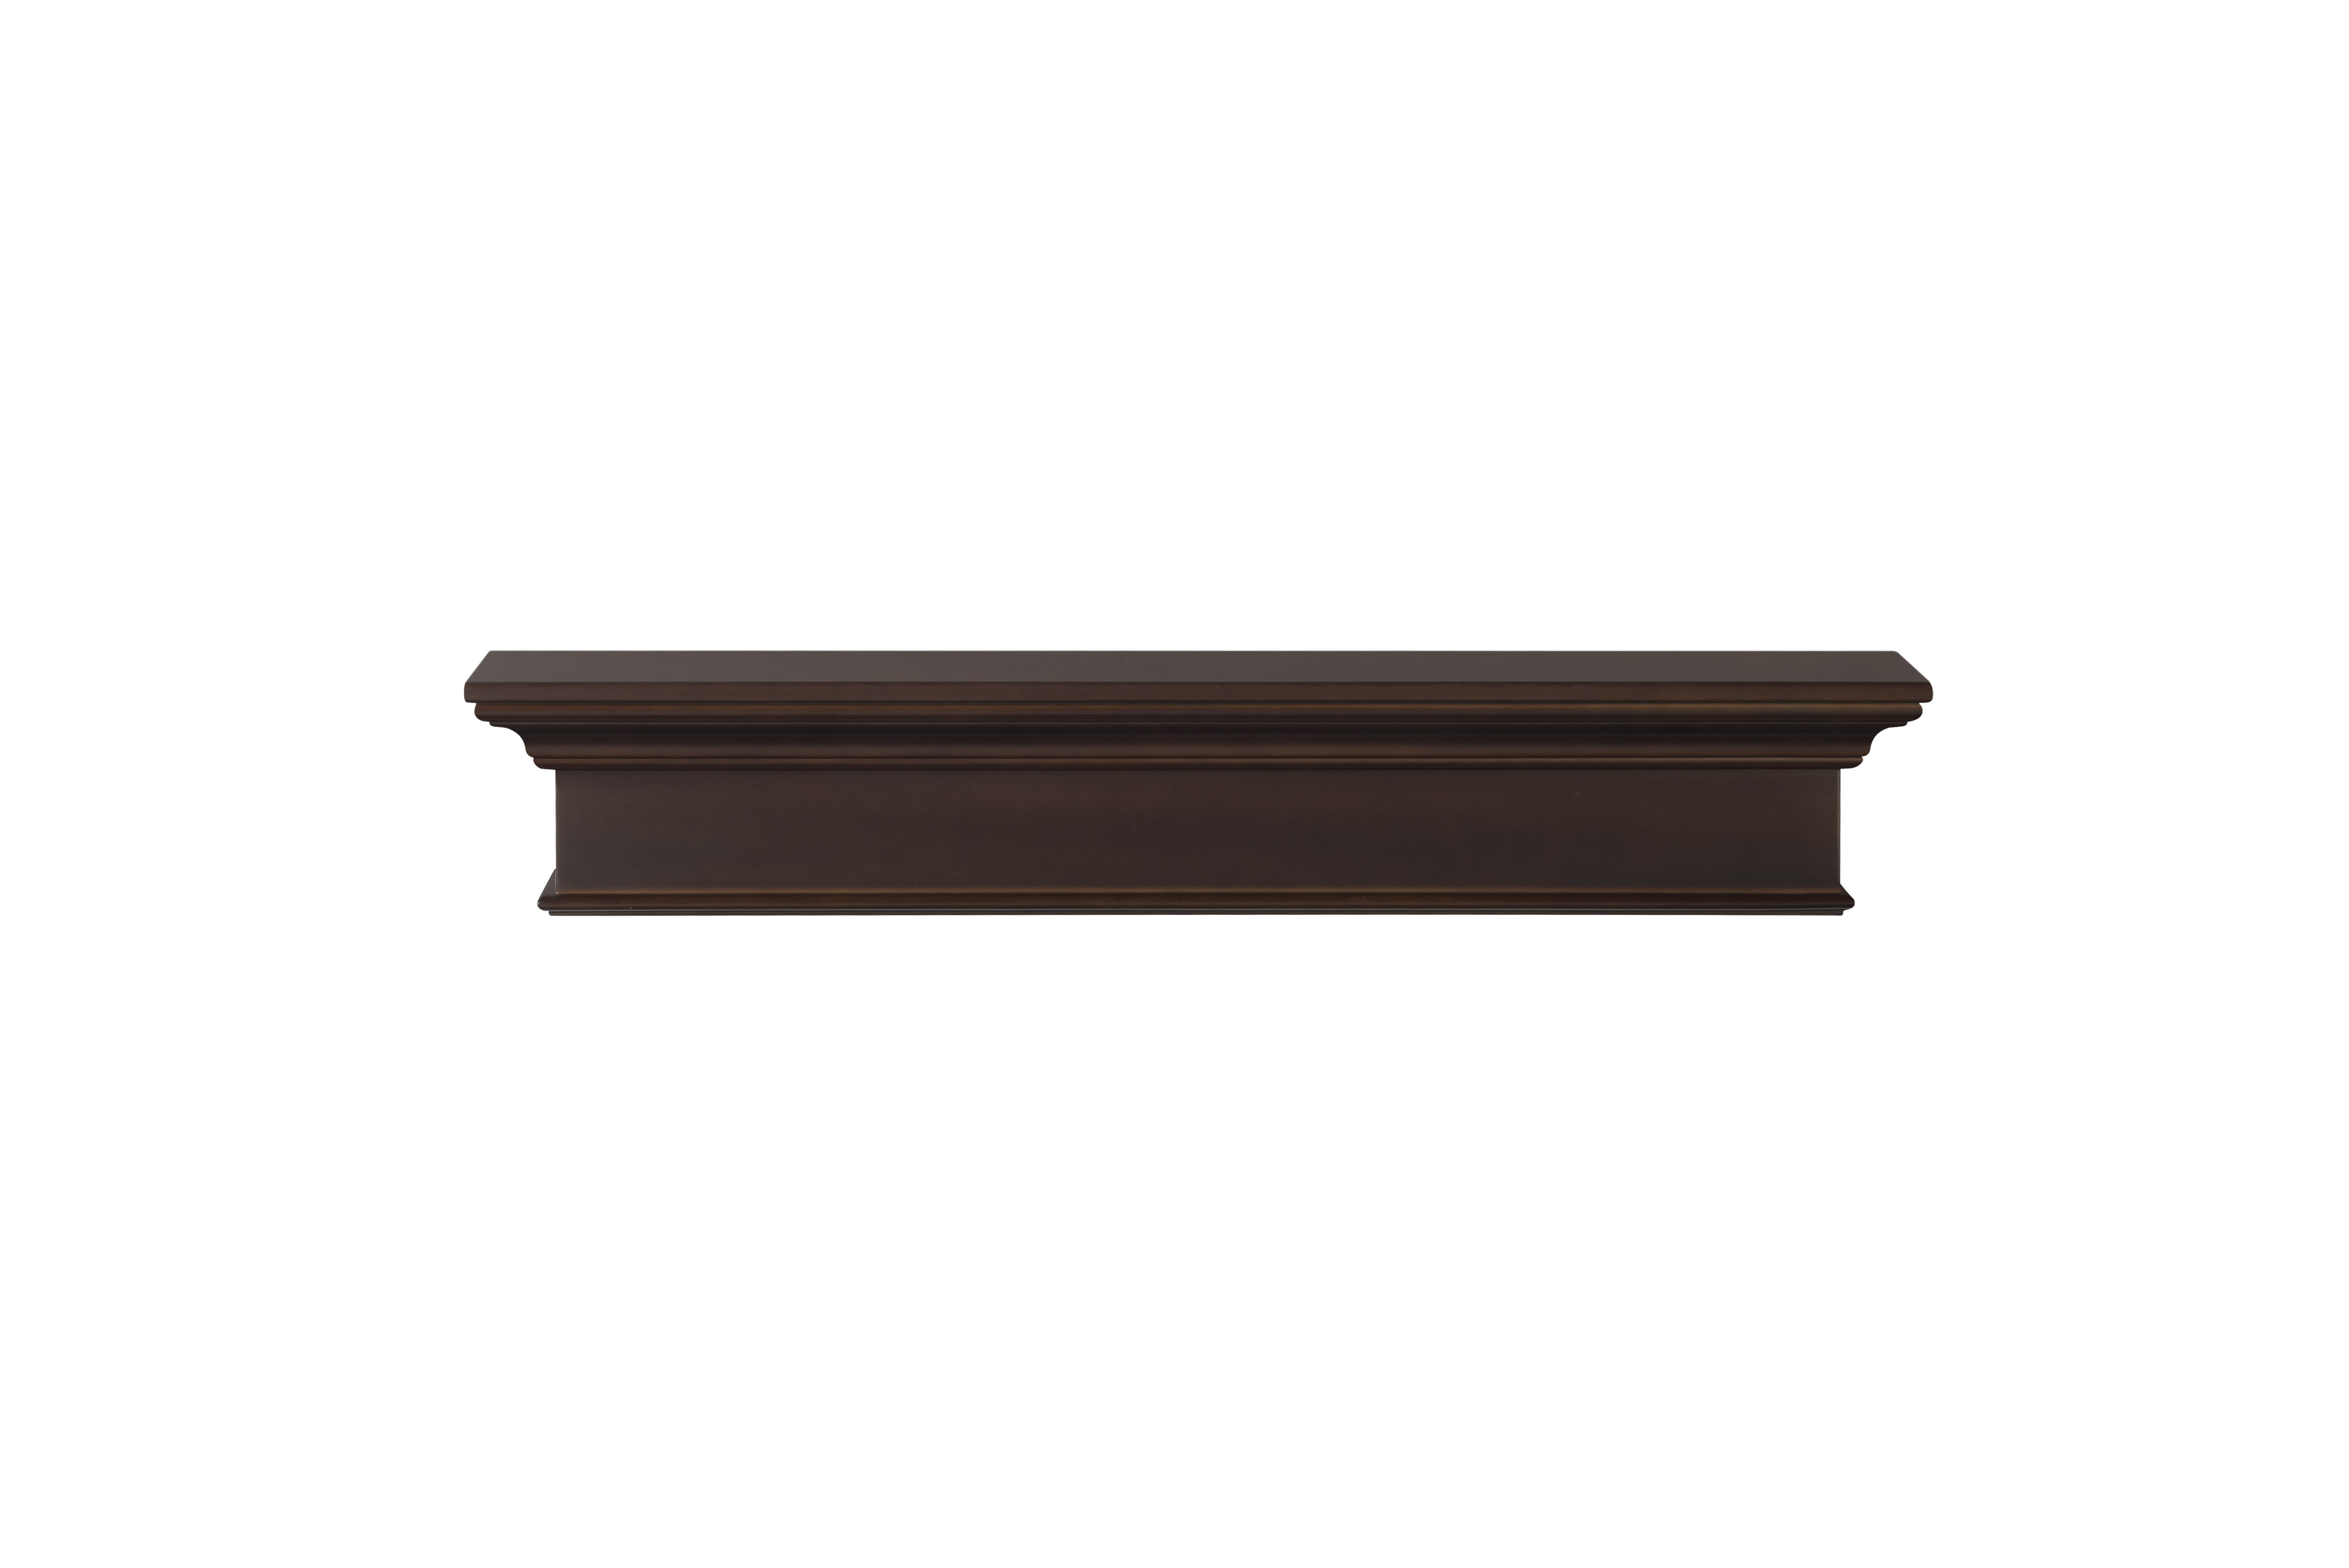 The Henry 610 Chocolate Brown Painted Fireplace Mantel Shelf